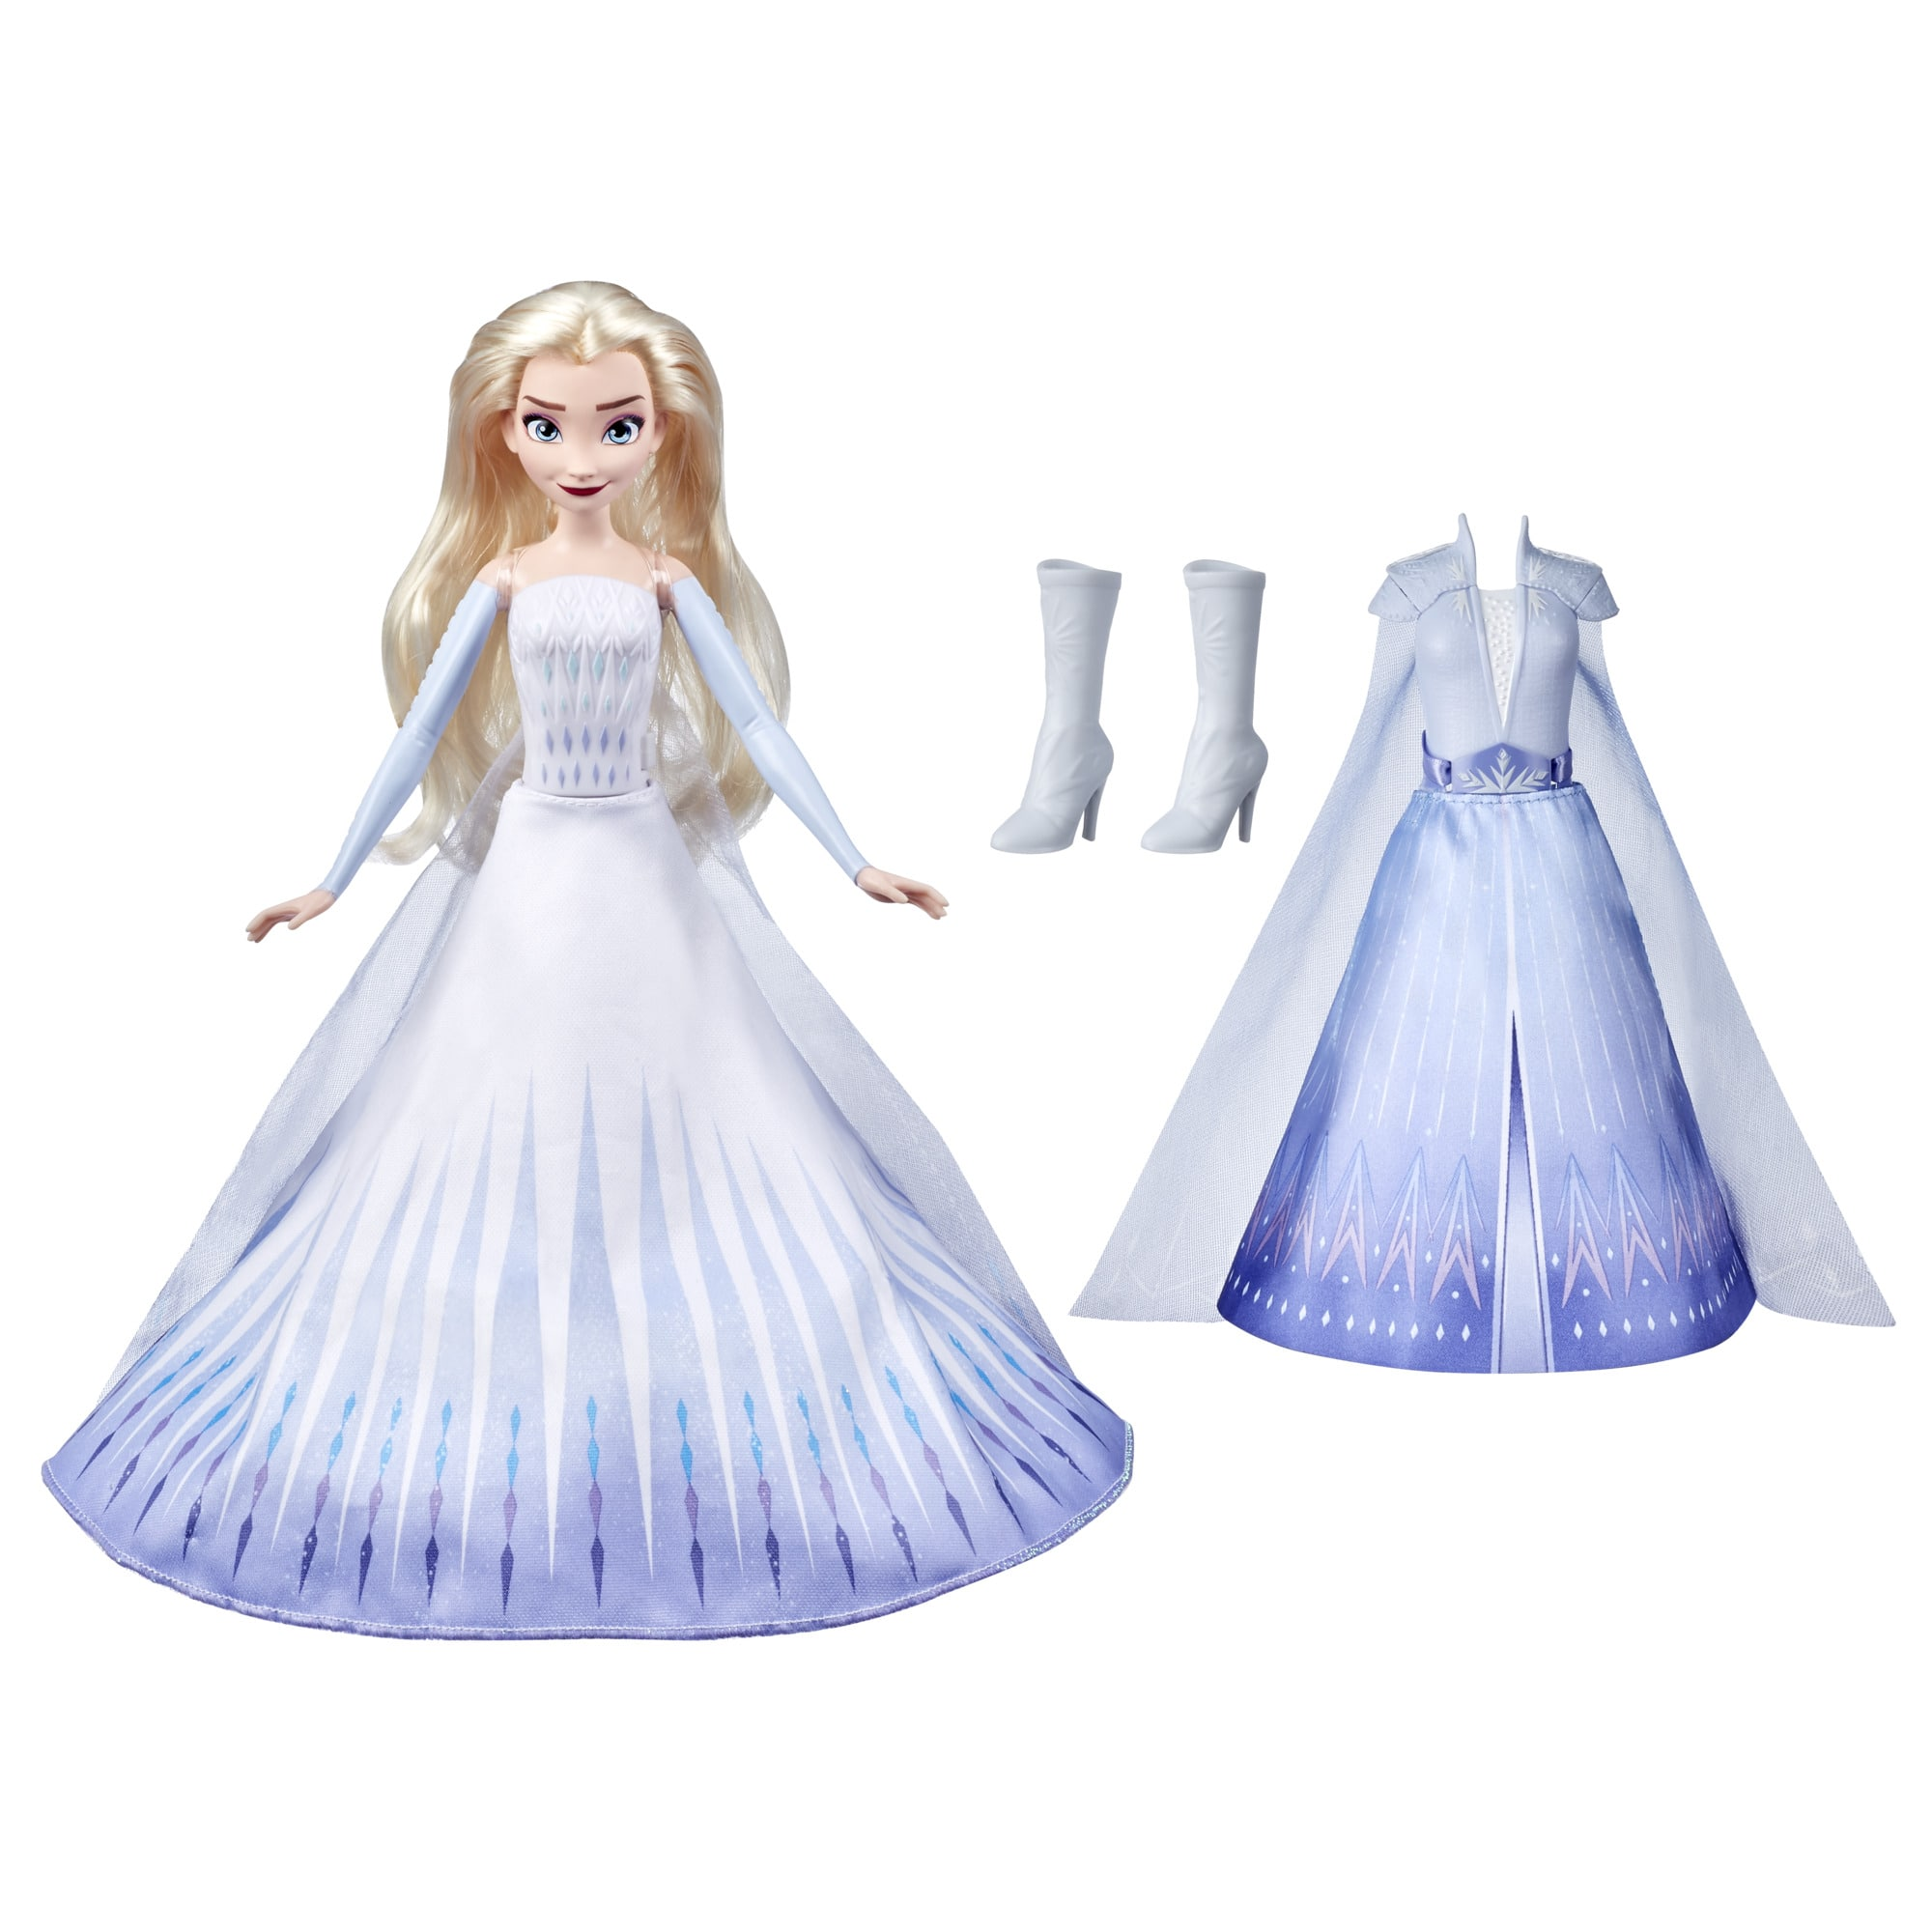 Disney's Frozen 2 Transformation Fashion Doll w/ 2 Outfits & Hair Styles (Elsa or Anna) $15 + Free Shipping w/ Amazon Prime or Orders $25+